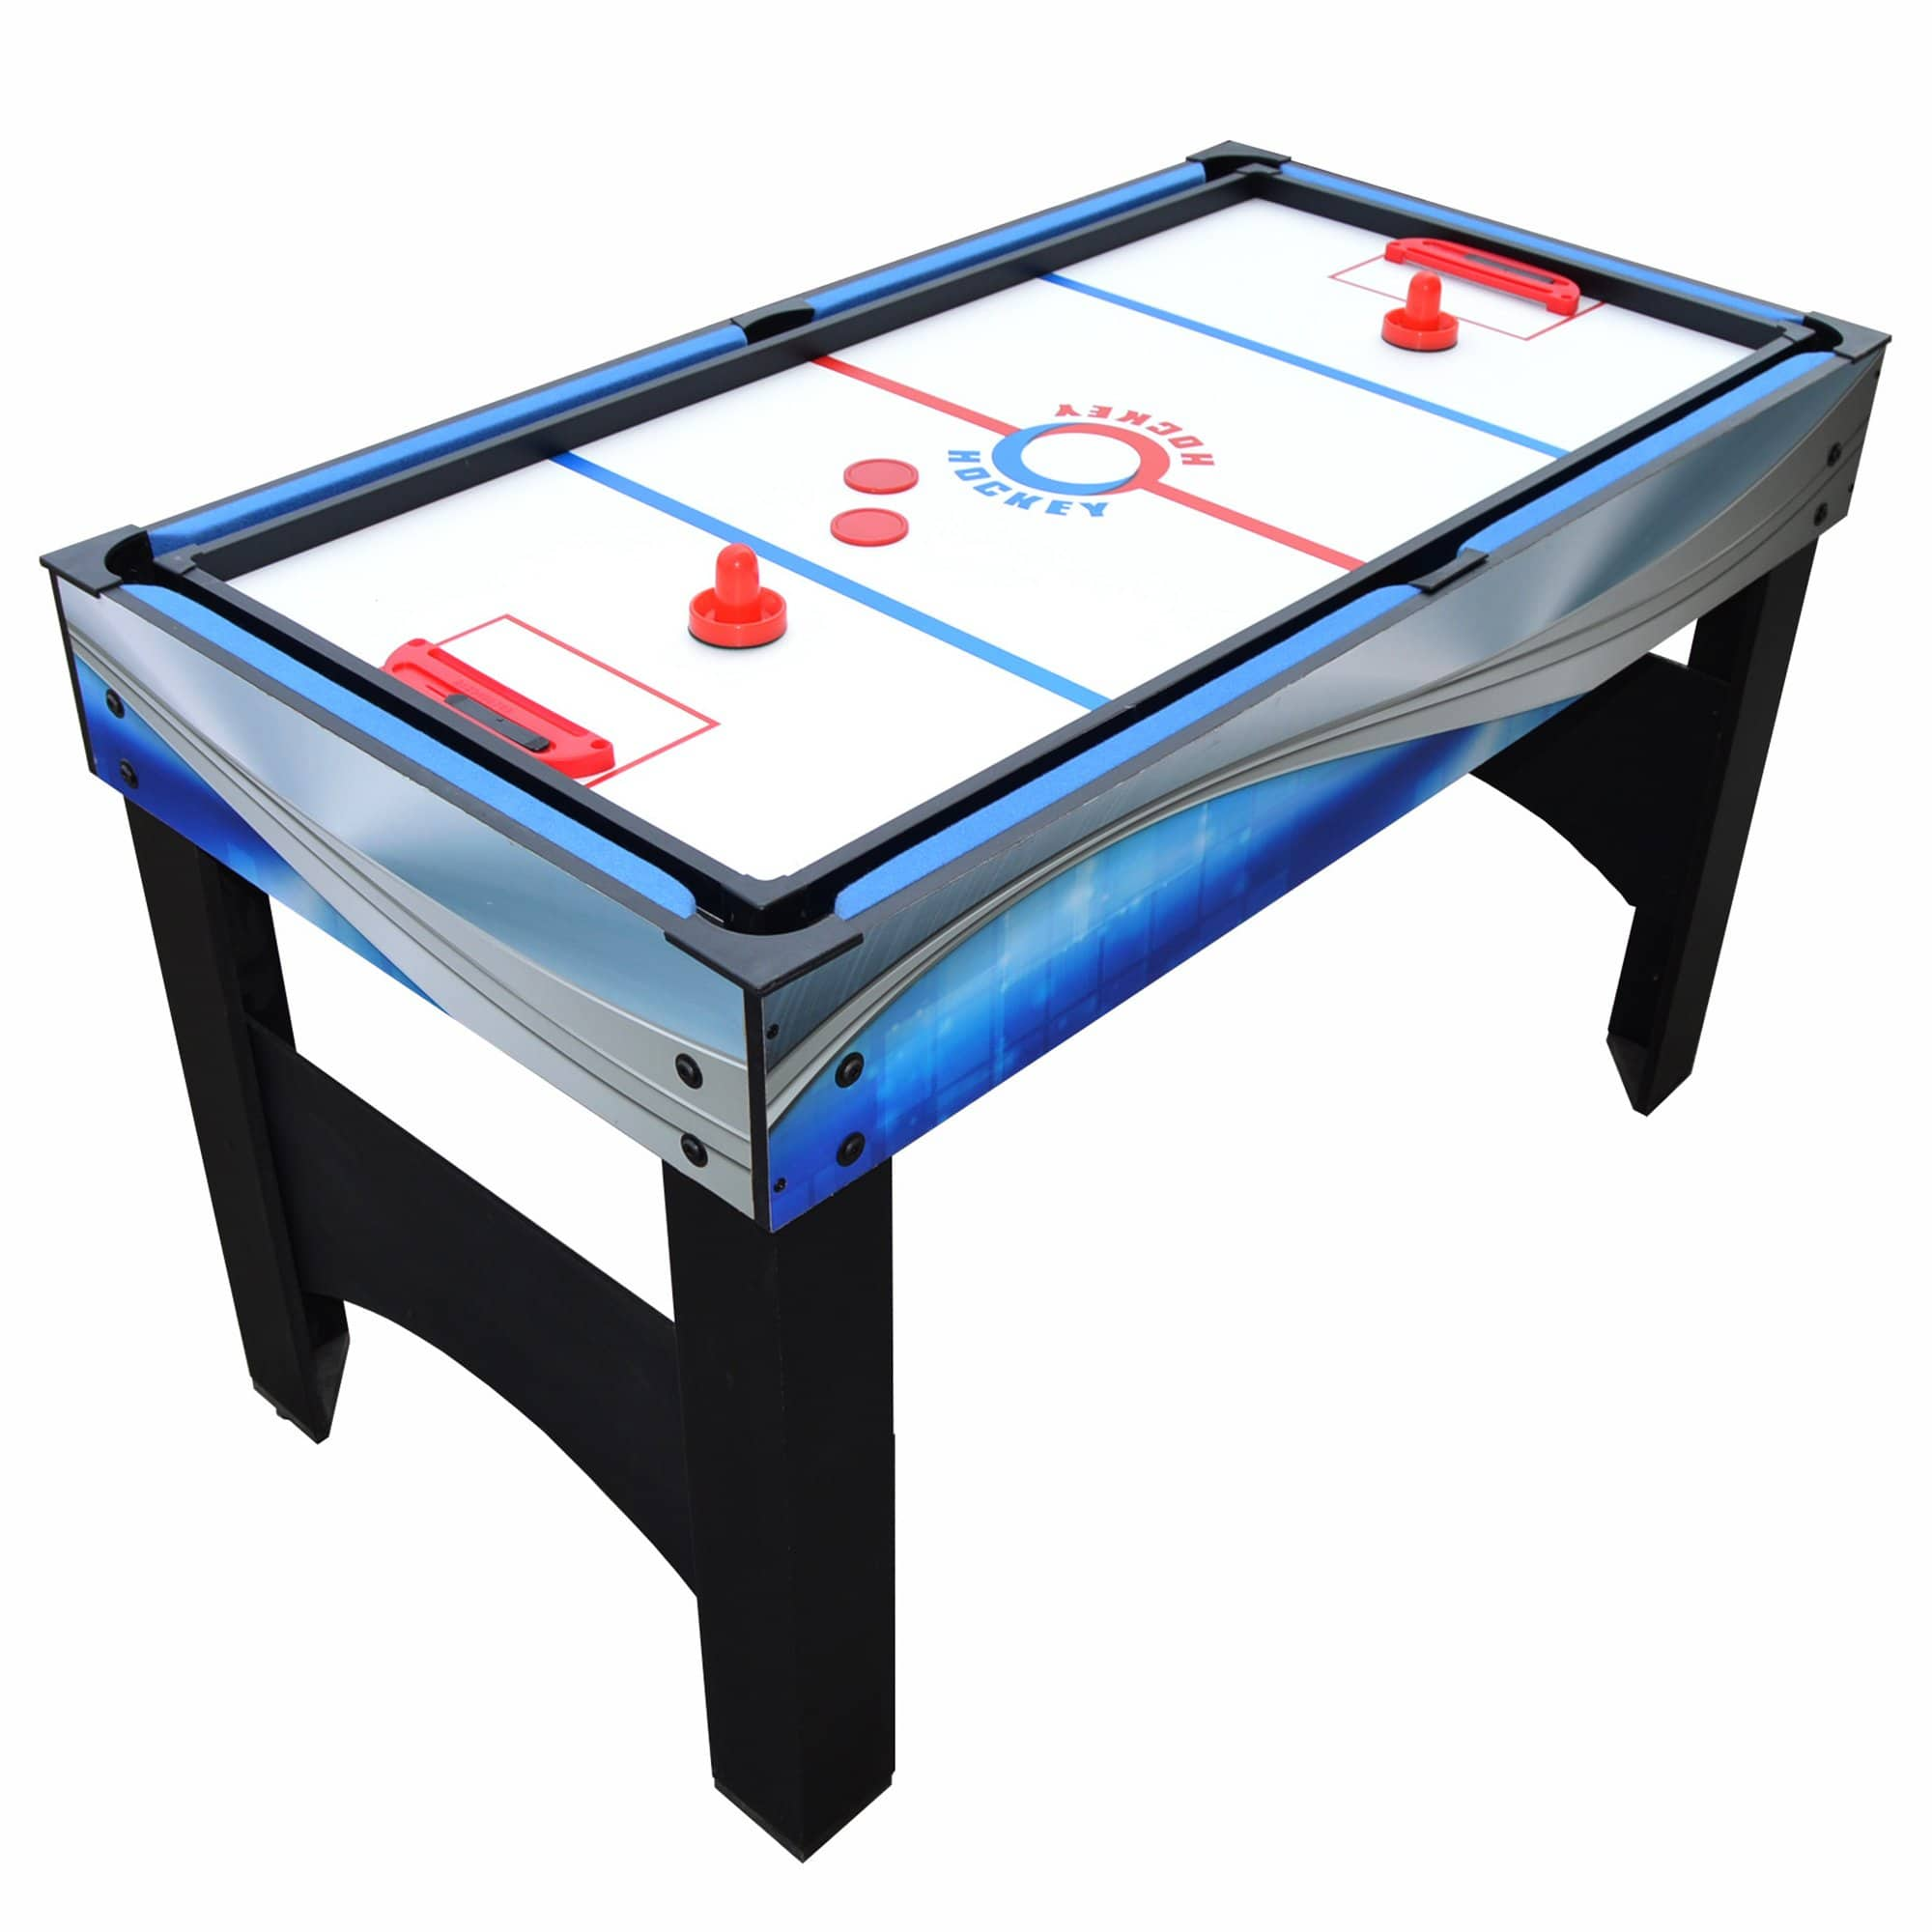 Delicieux Matrix 54 In 7 In 1 Multi Game Table